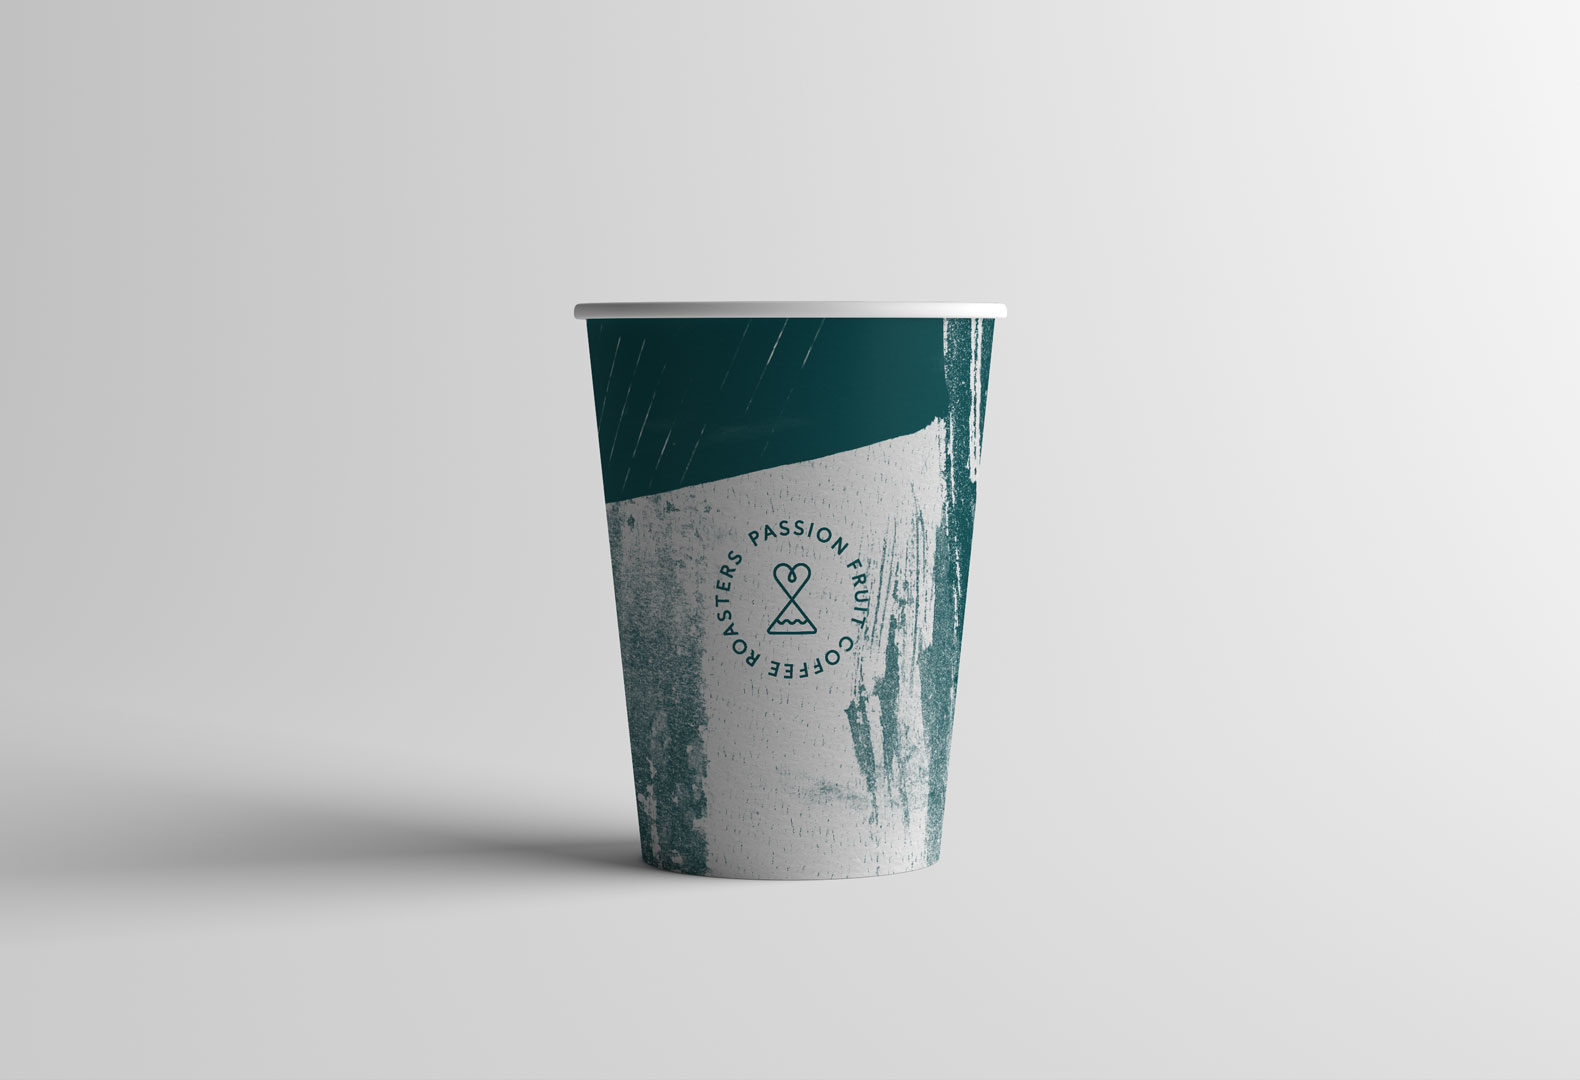 Passion Fruit branding system used on a paper coffee cup.